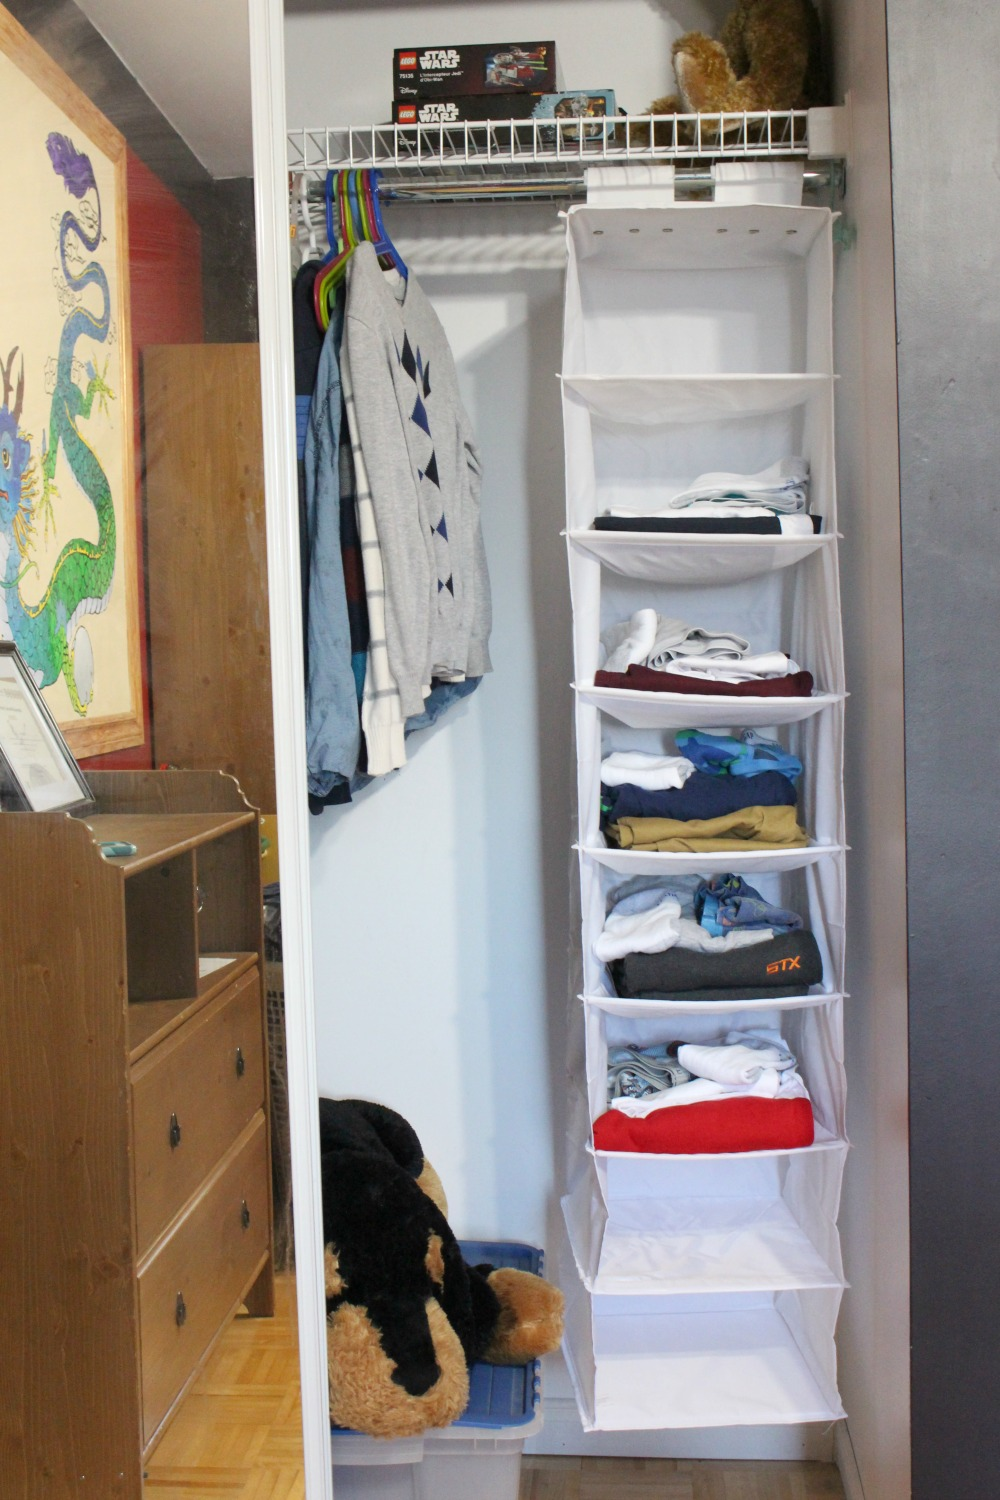 Make Back-To-School A Breeze With These 5 Organization Hacks